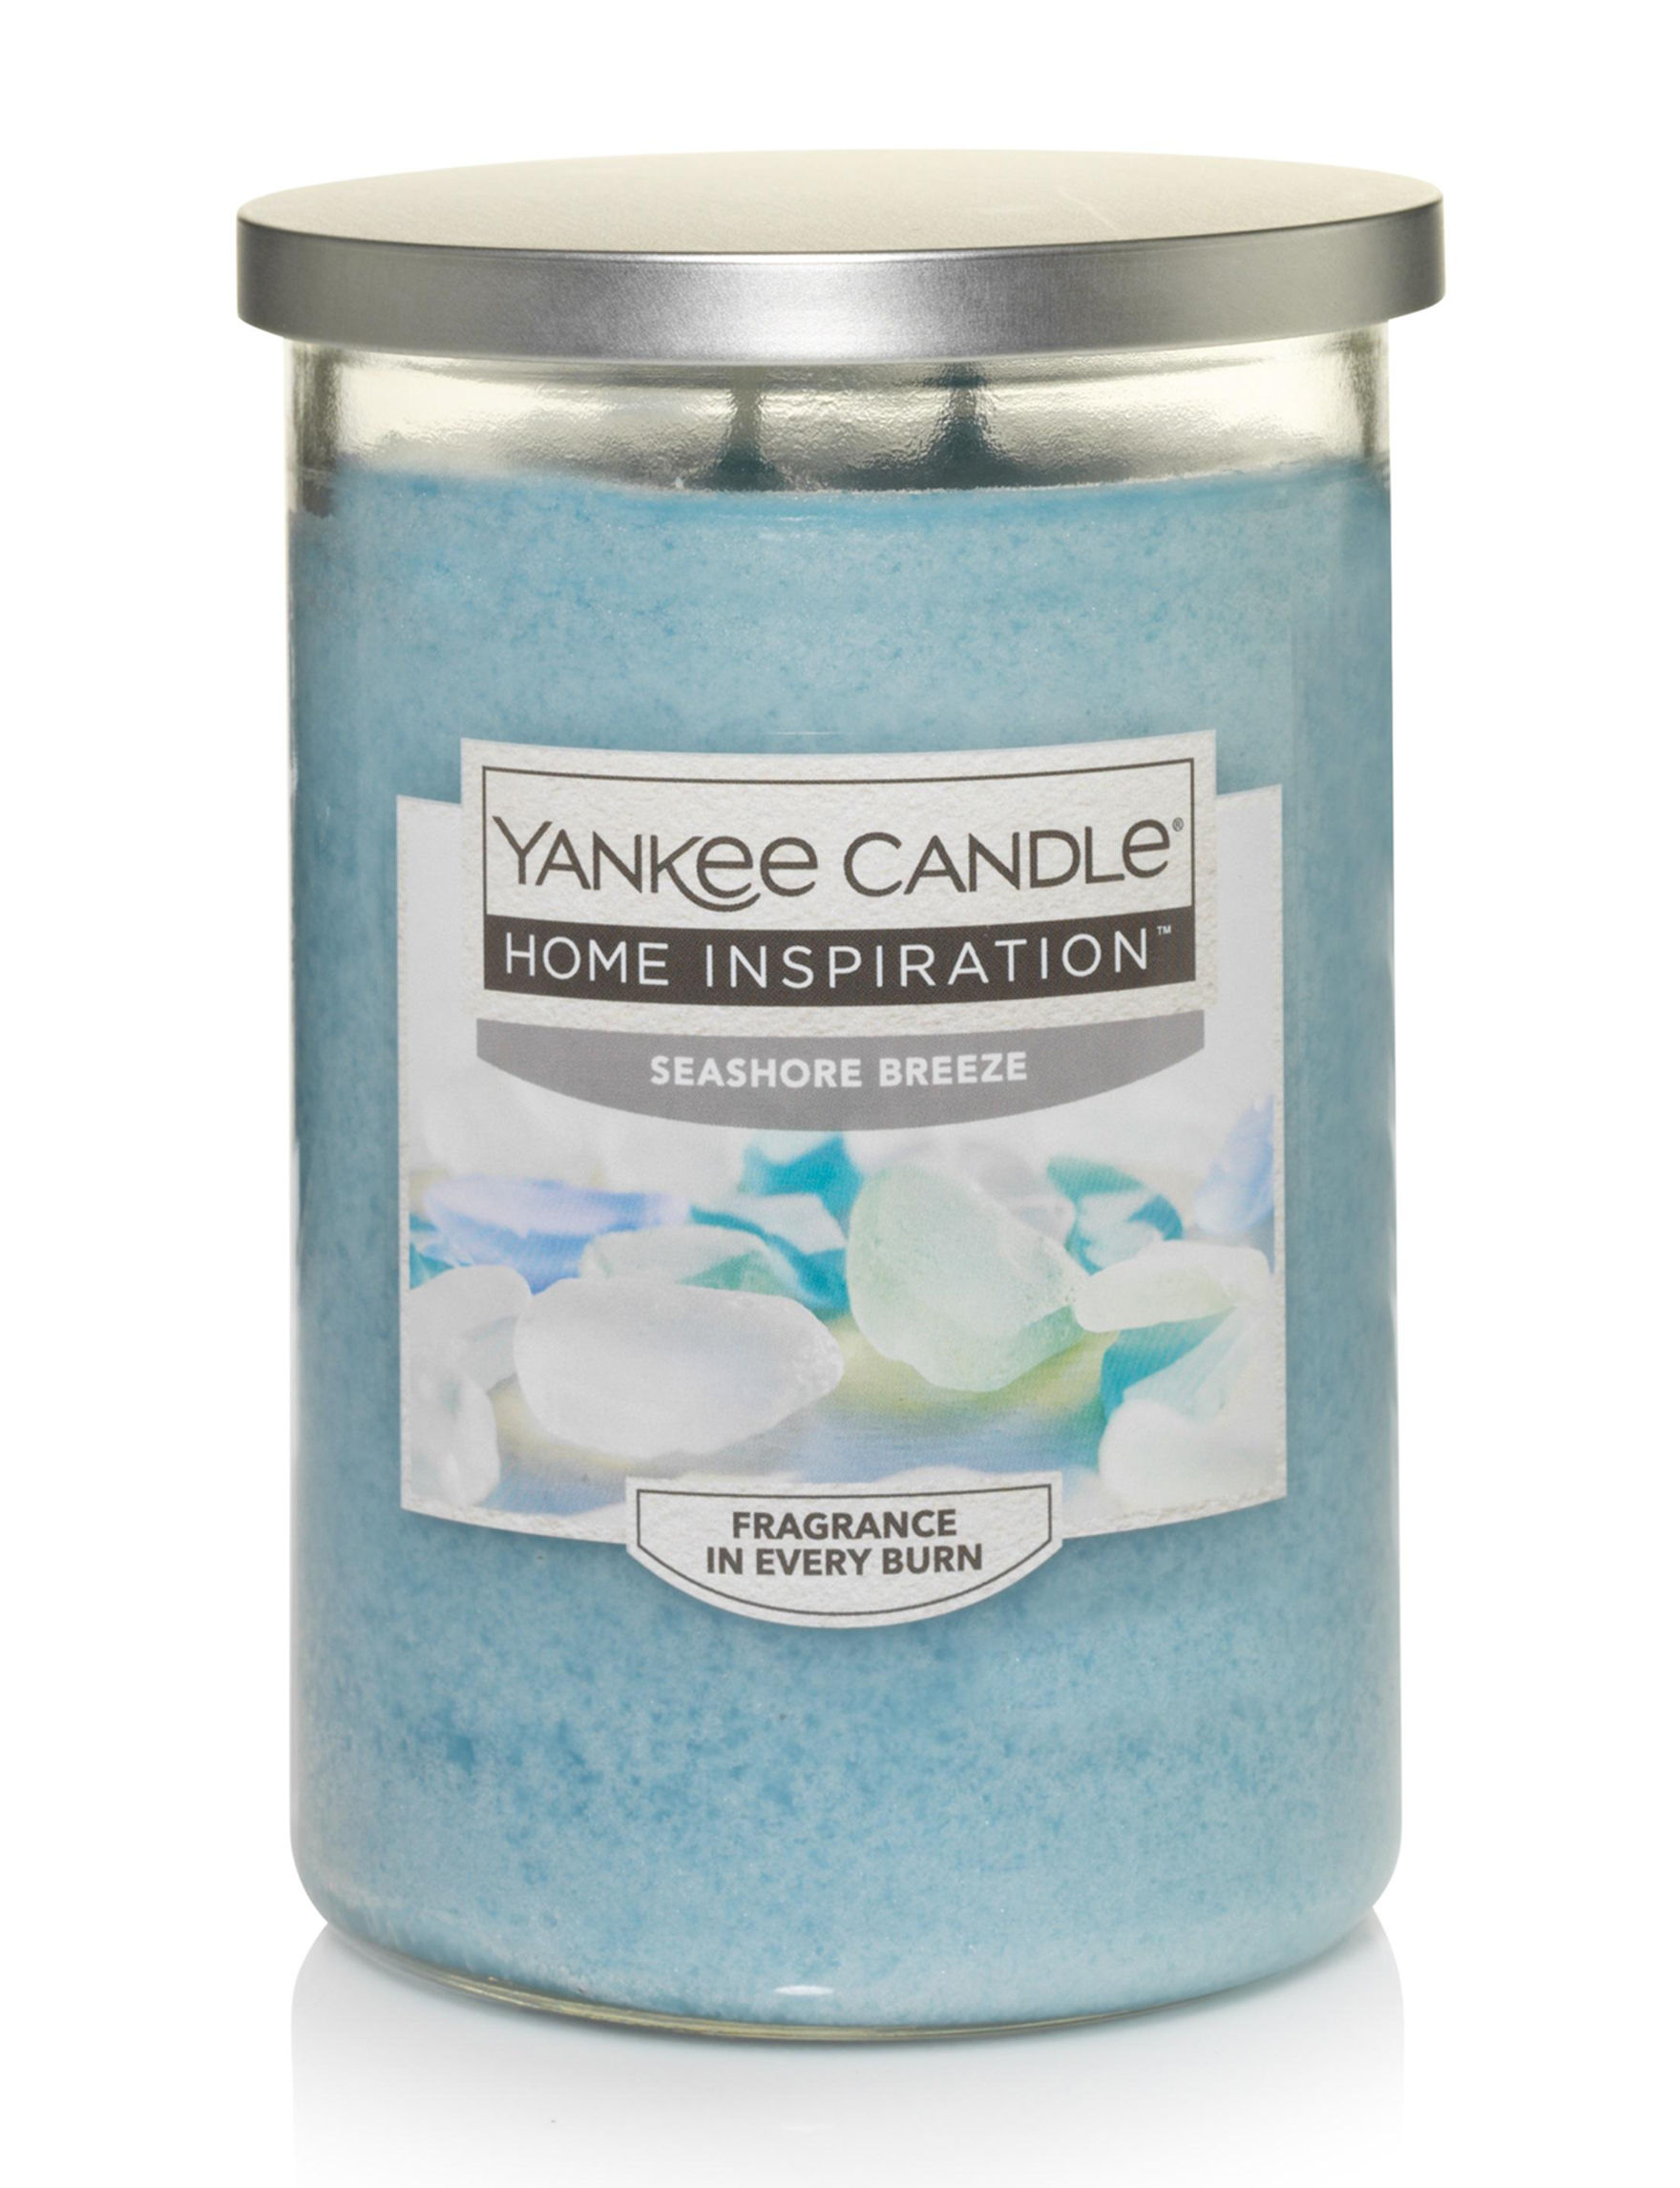 Yankee Candle Light Blue Candles Candles & Diffusers